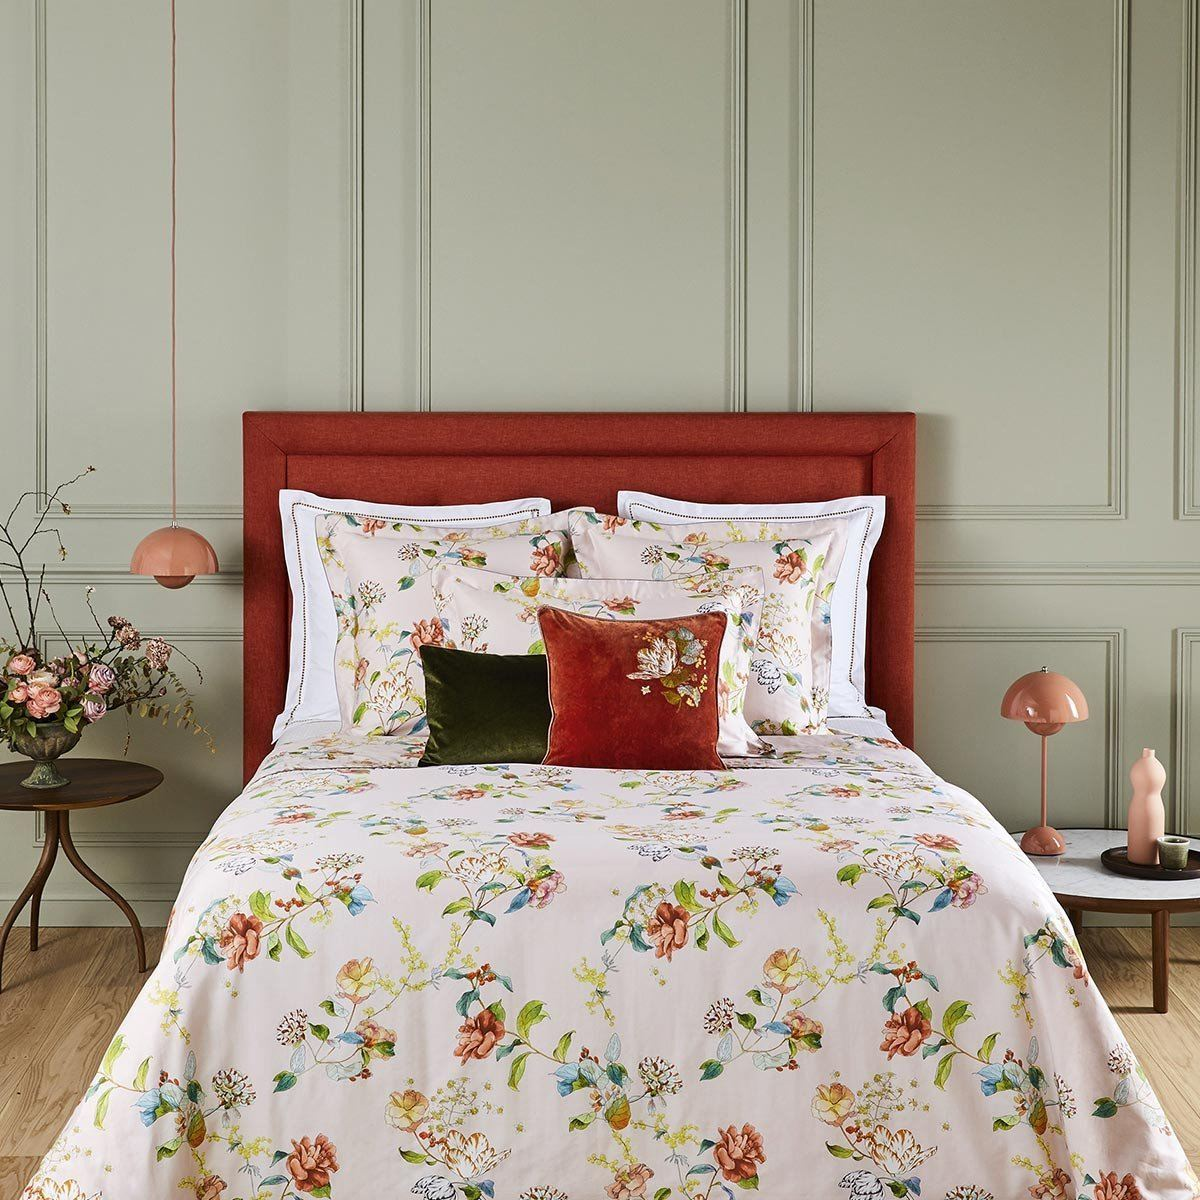 Bagatelle Bedding by Yves Delorme